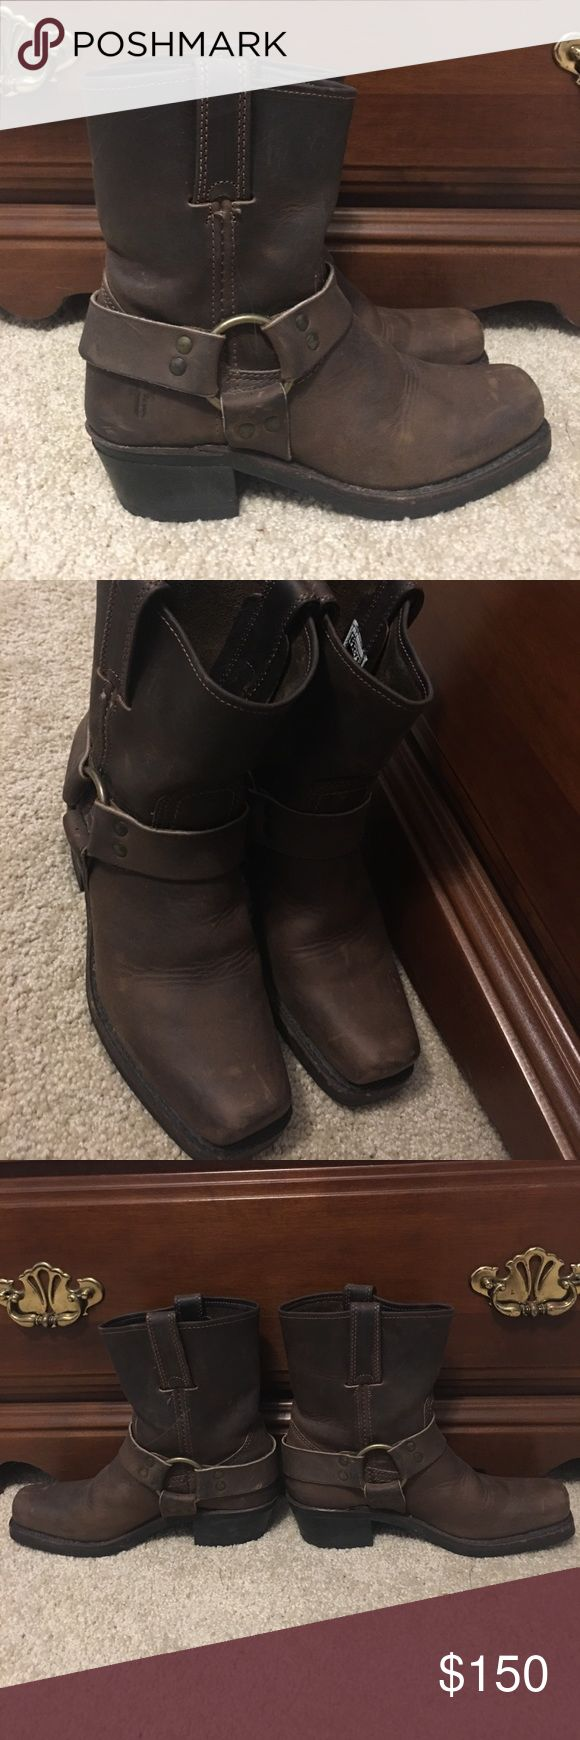 Selling this Frye harness 8R boots on Poshmark! My username is: rsederberg. #shopmycloset #poshmark #fashion #shopping #style #forsale #Frye #Shoes